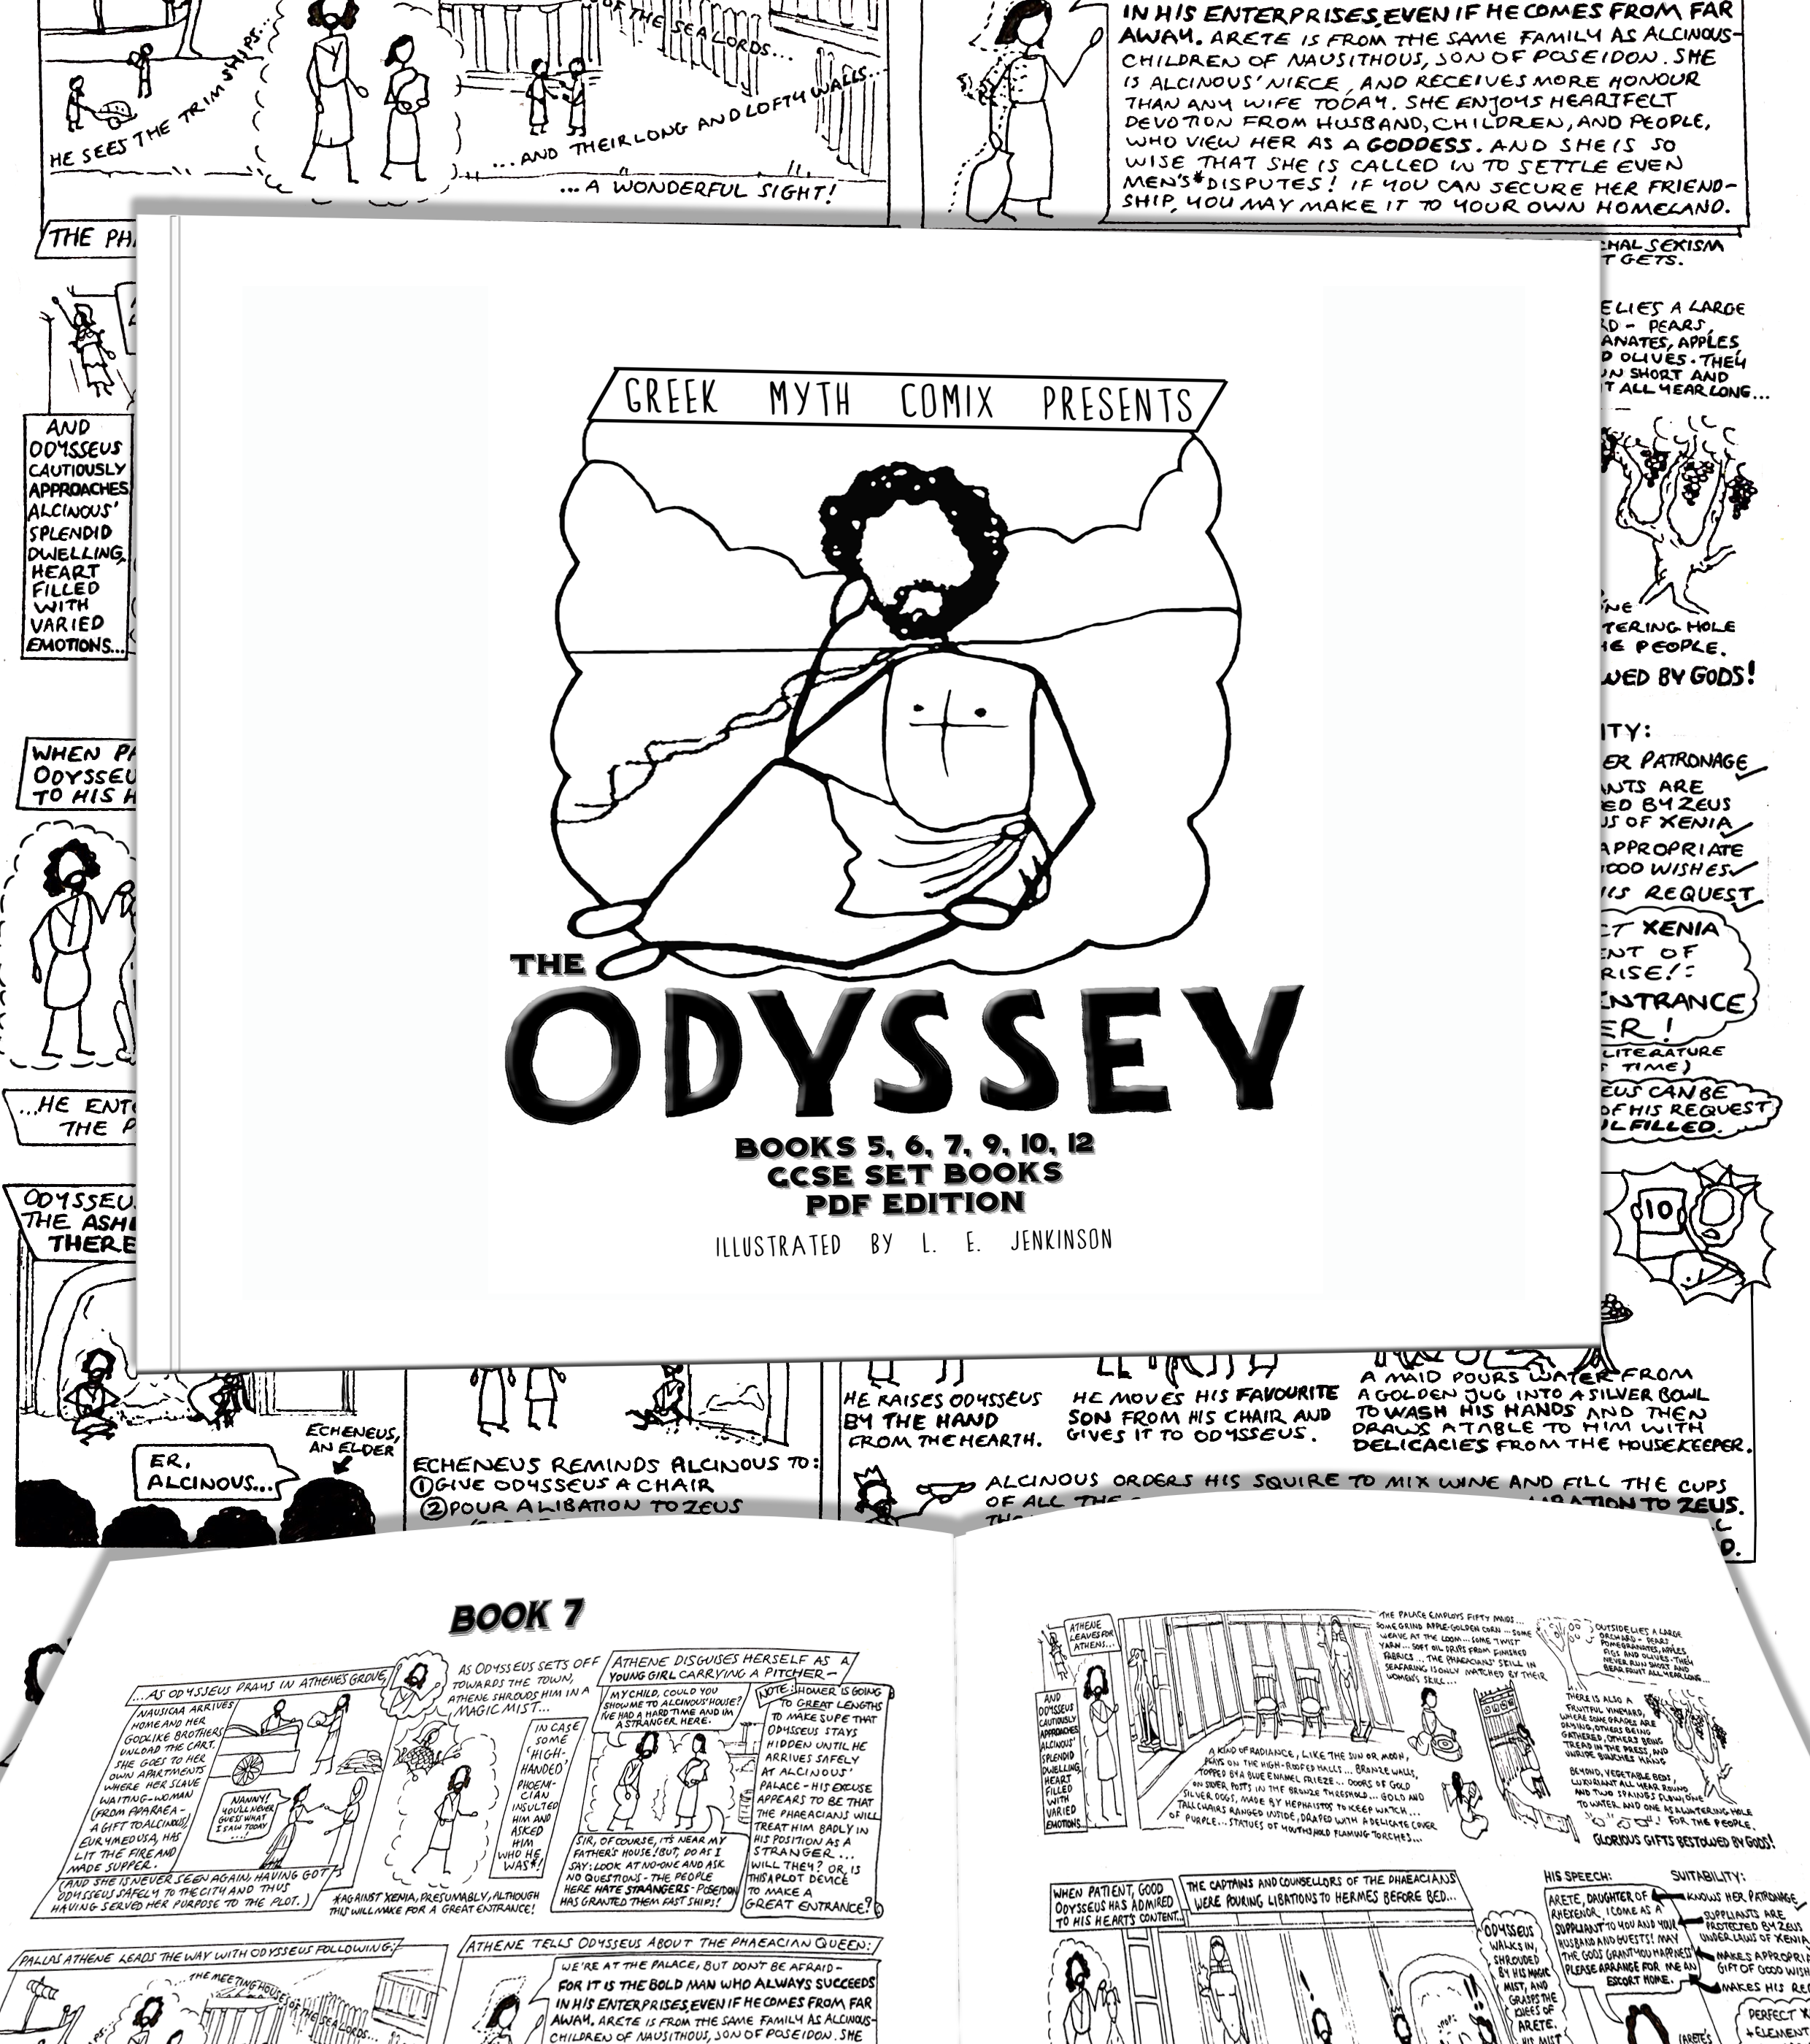 the odyssey book 7 the o jays book and comic greek myth comix presents the odyssey set books for gcse as a pdf or class